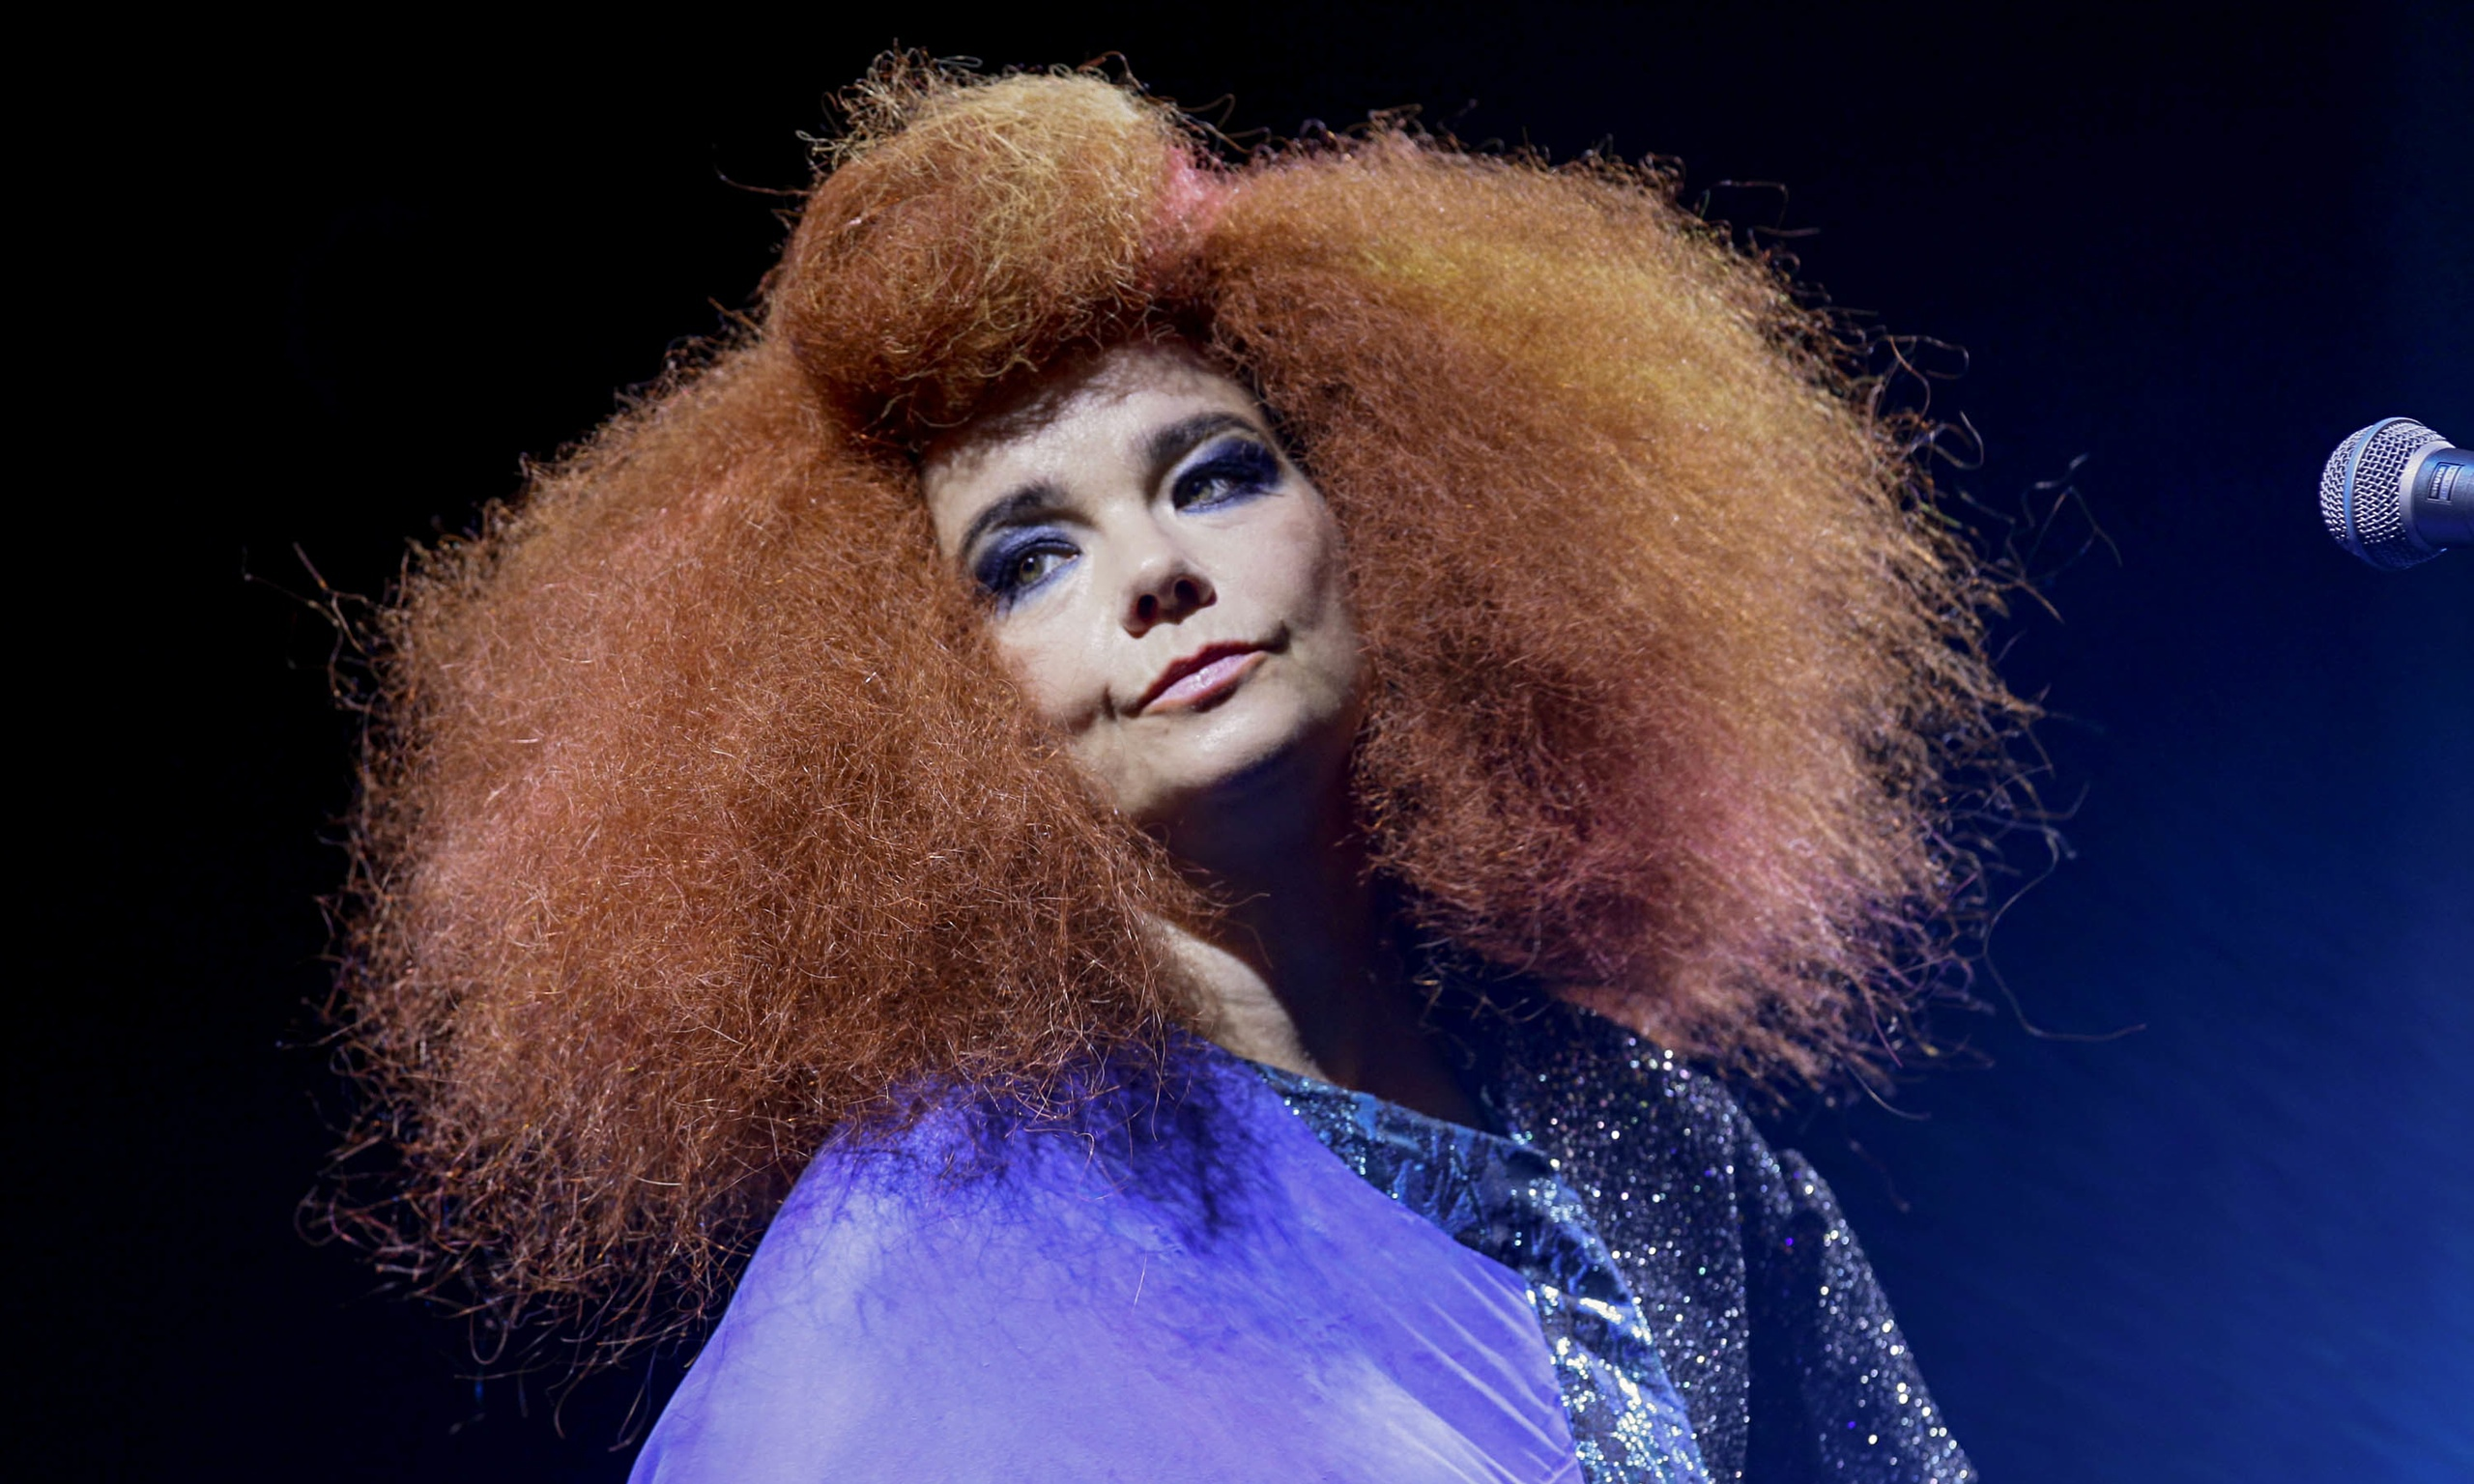 Björk just dropped some major feminist truths about the music industry